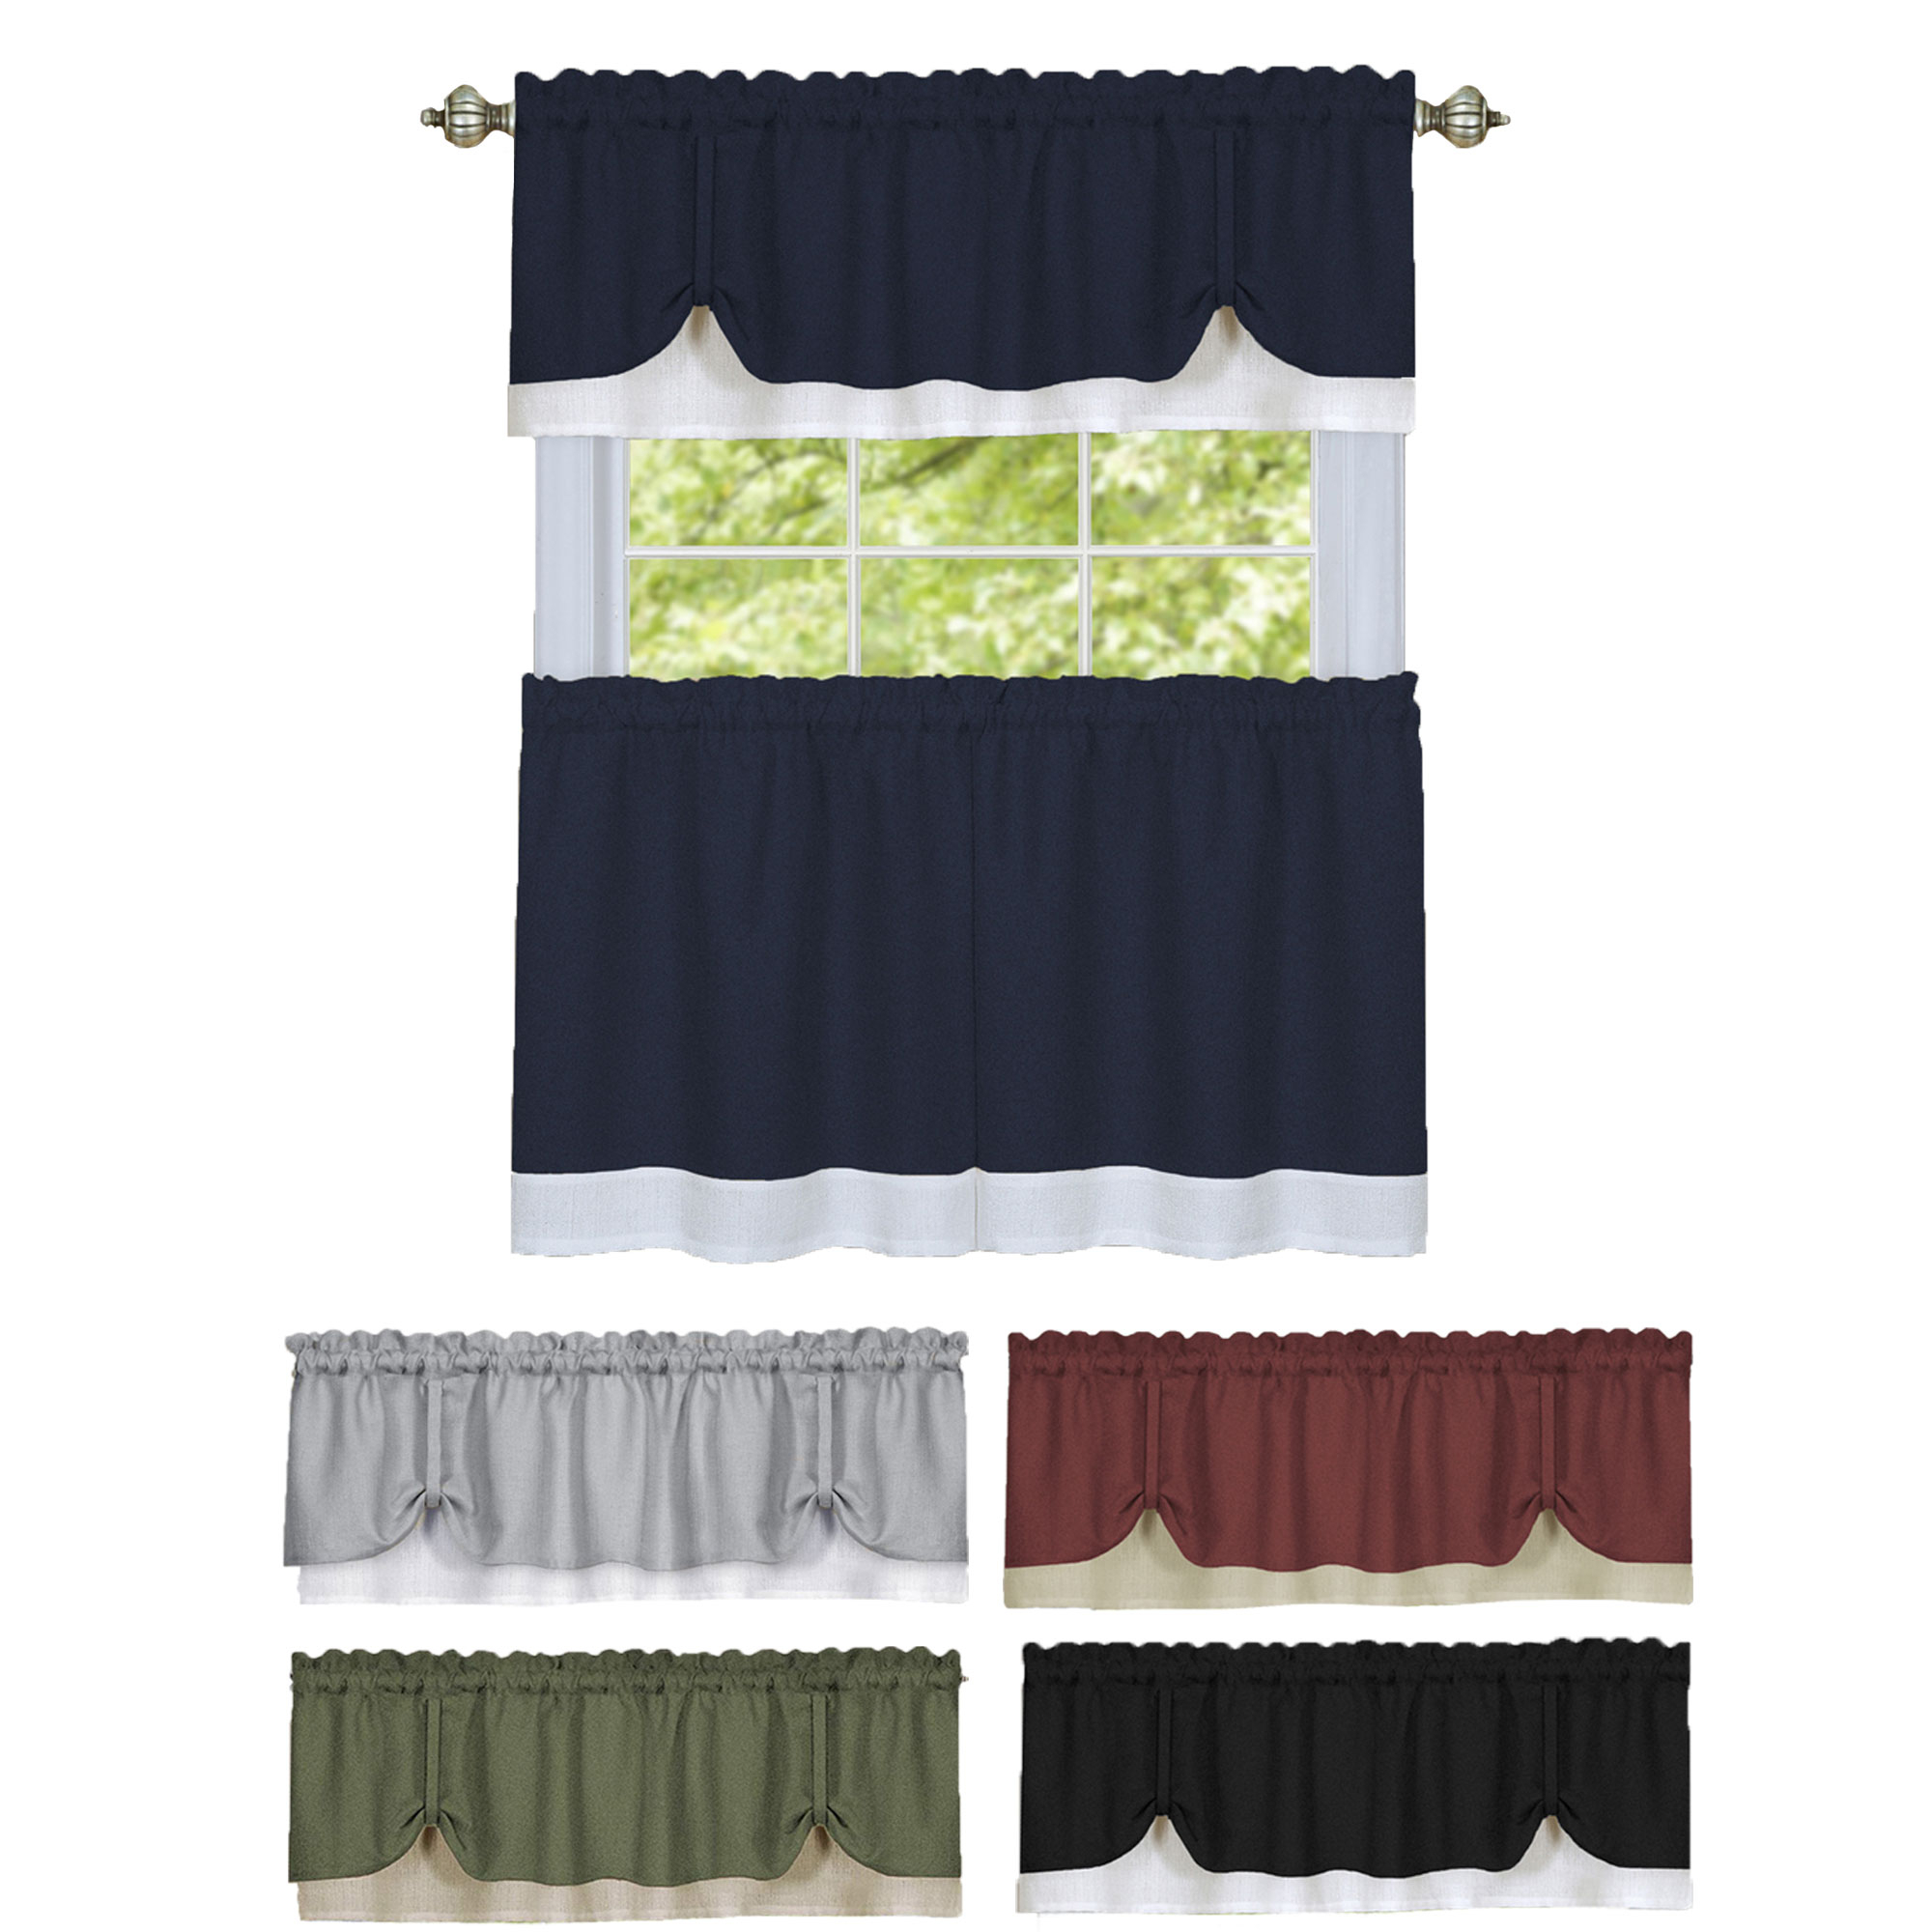 Details About Solid Window Curtain Double Layer Tier Pair & Valance Set For Preferred Traditional Two Piece Tailored Tier And Valance Window Curtains (View 3 of 20)